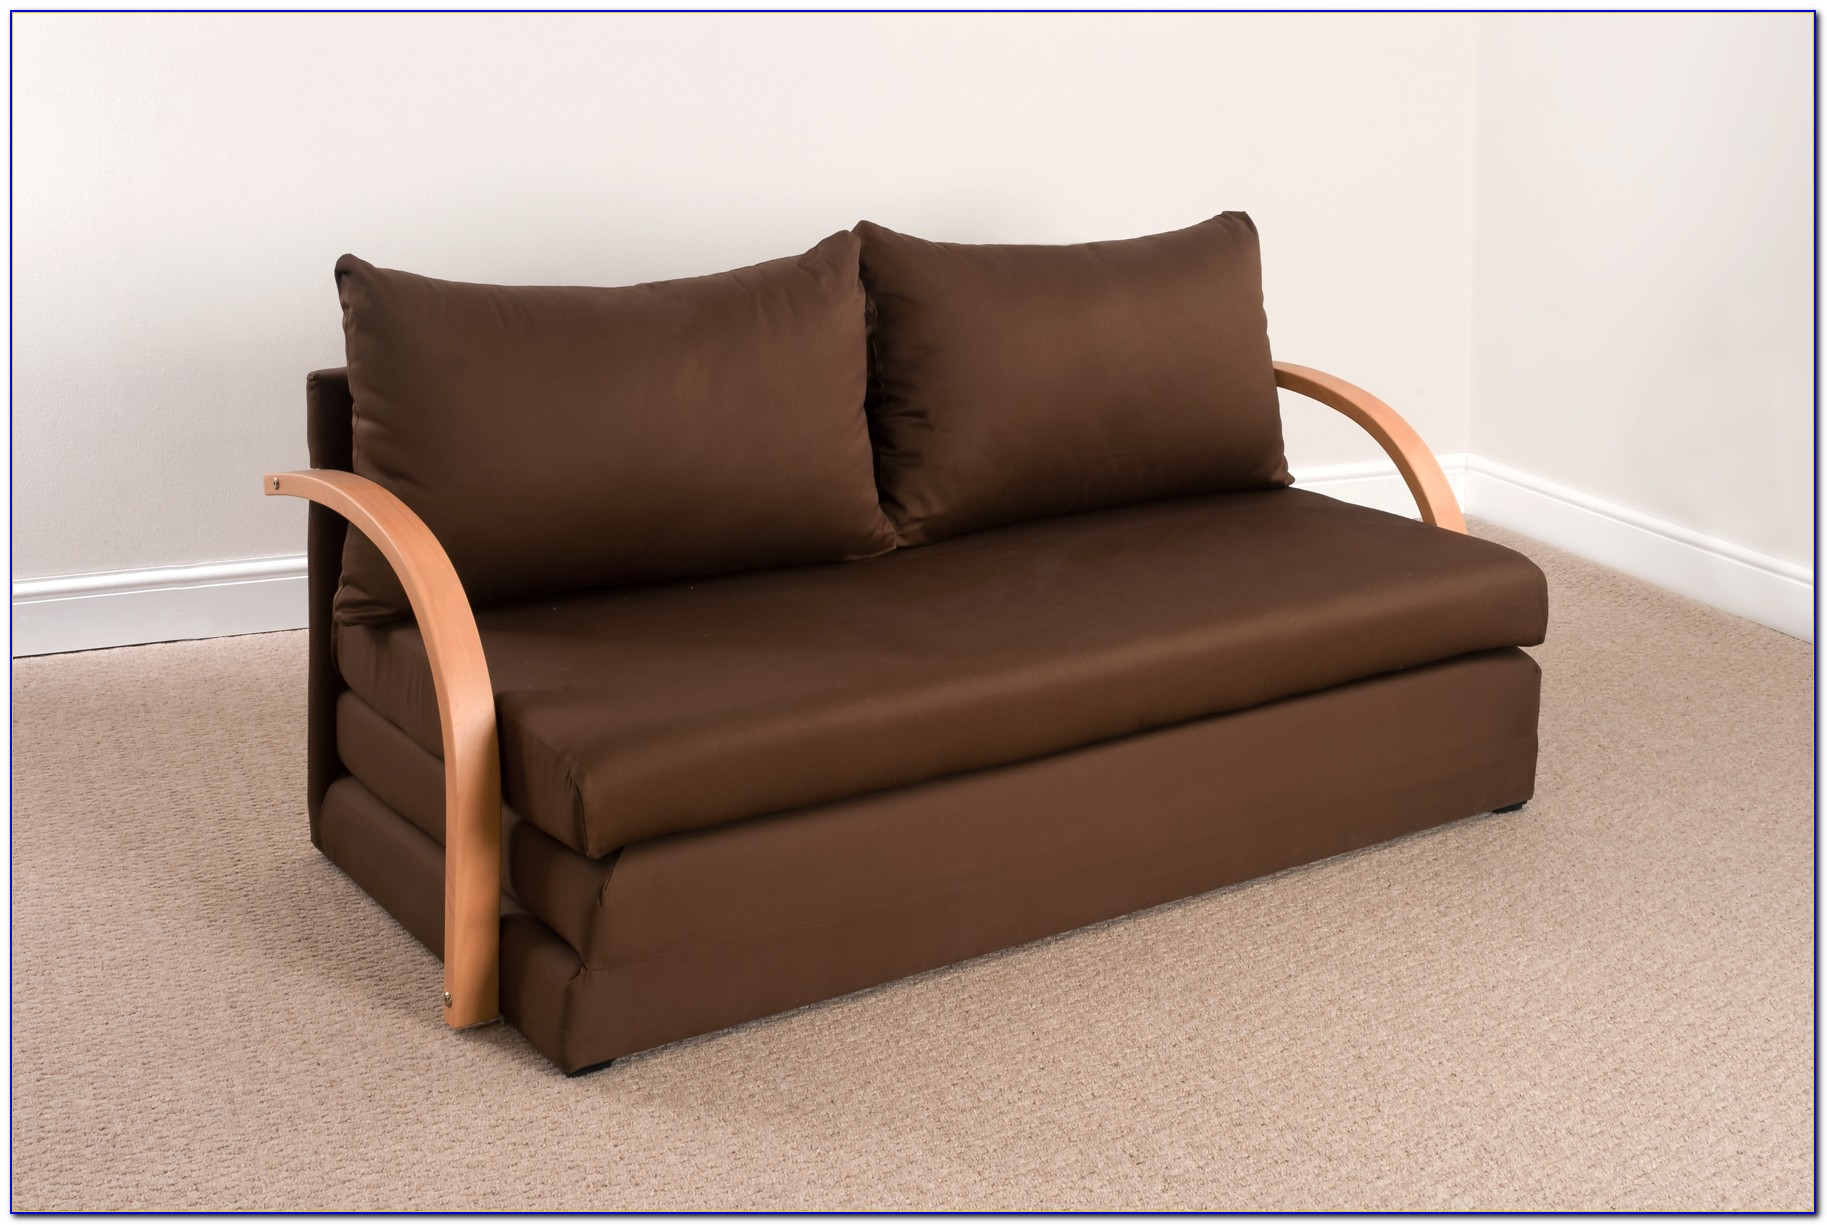 Sleeper Chair Folding Foam Bed Cover